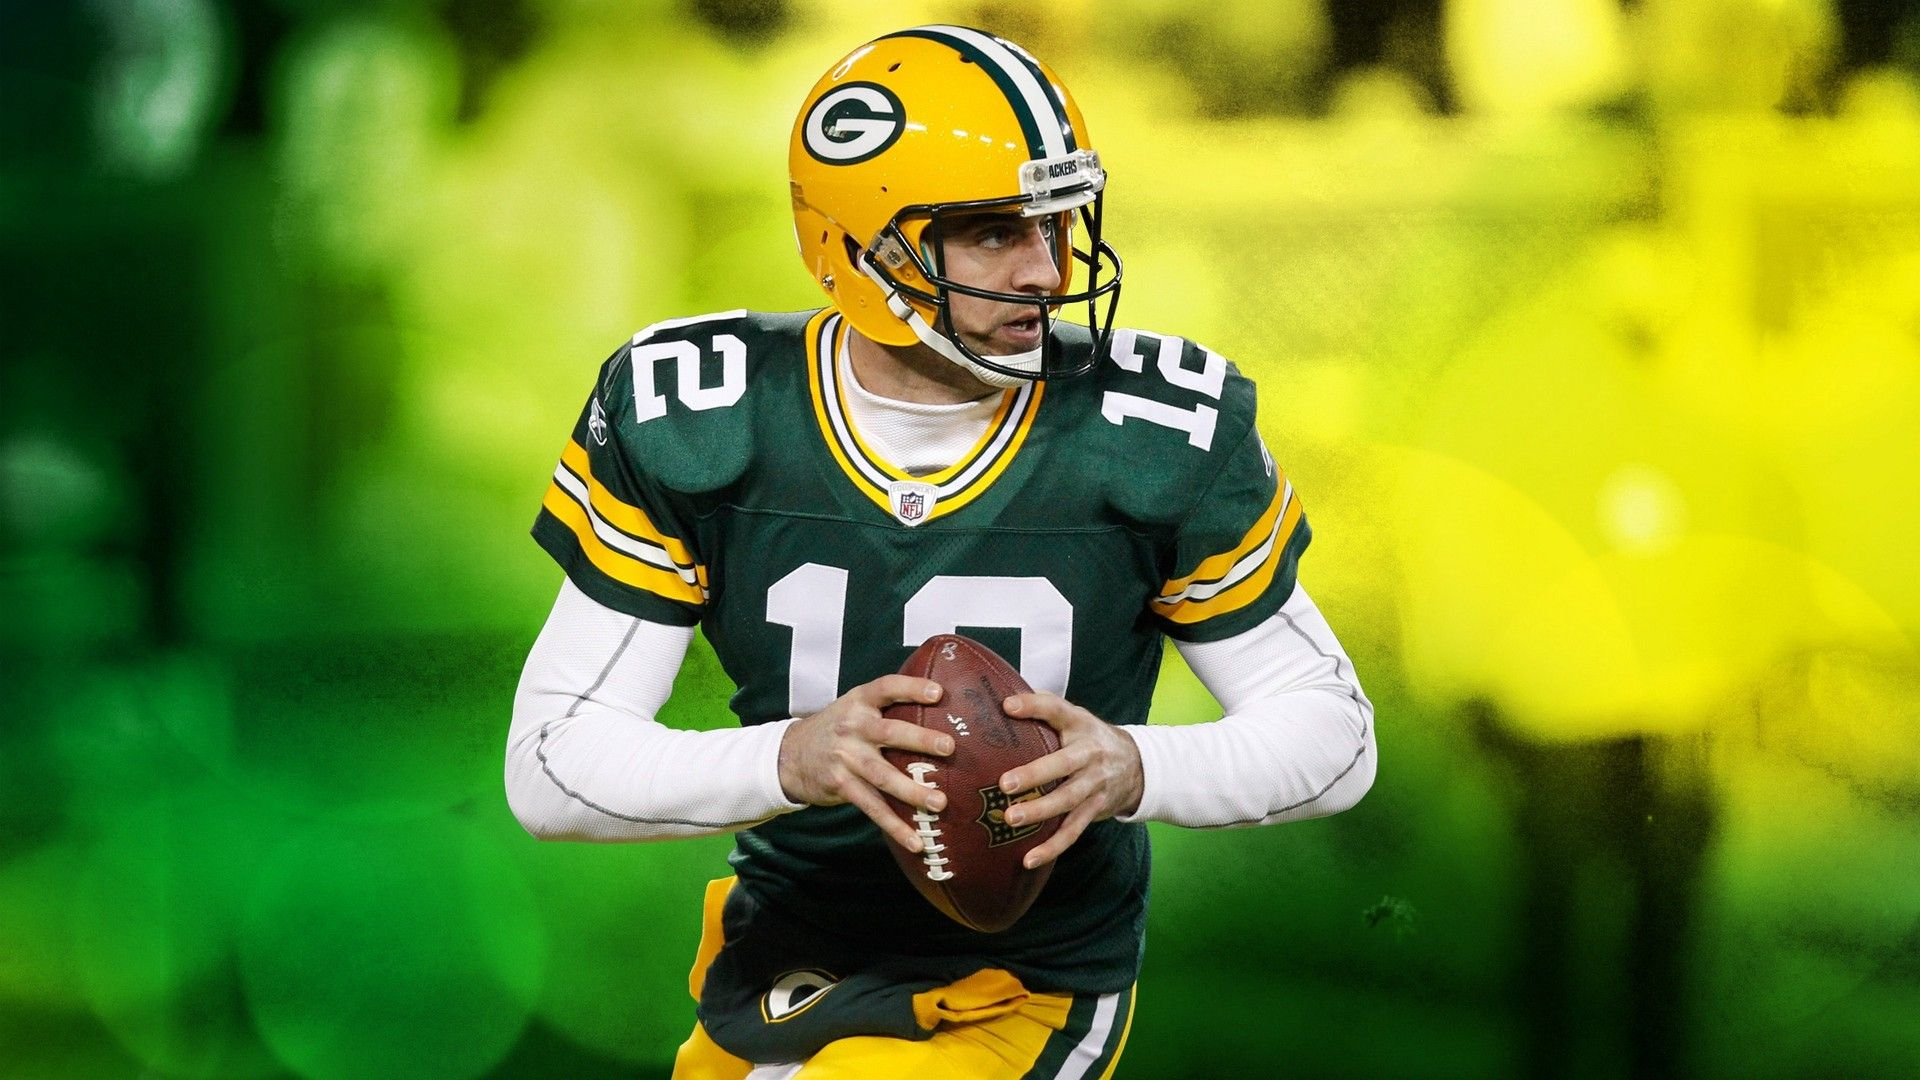 Hd Aaron Rodgers Backgrounds 2020 Nfl Football Wallpapers Nfl Football Wallpaper Nfl Football Nfl